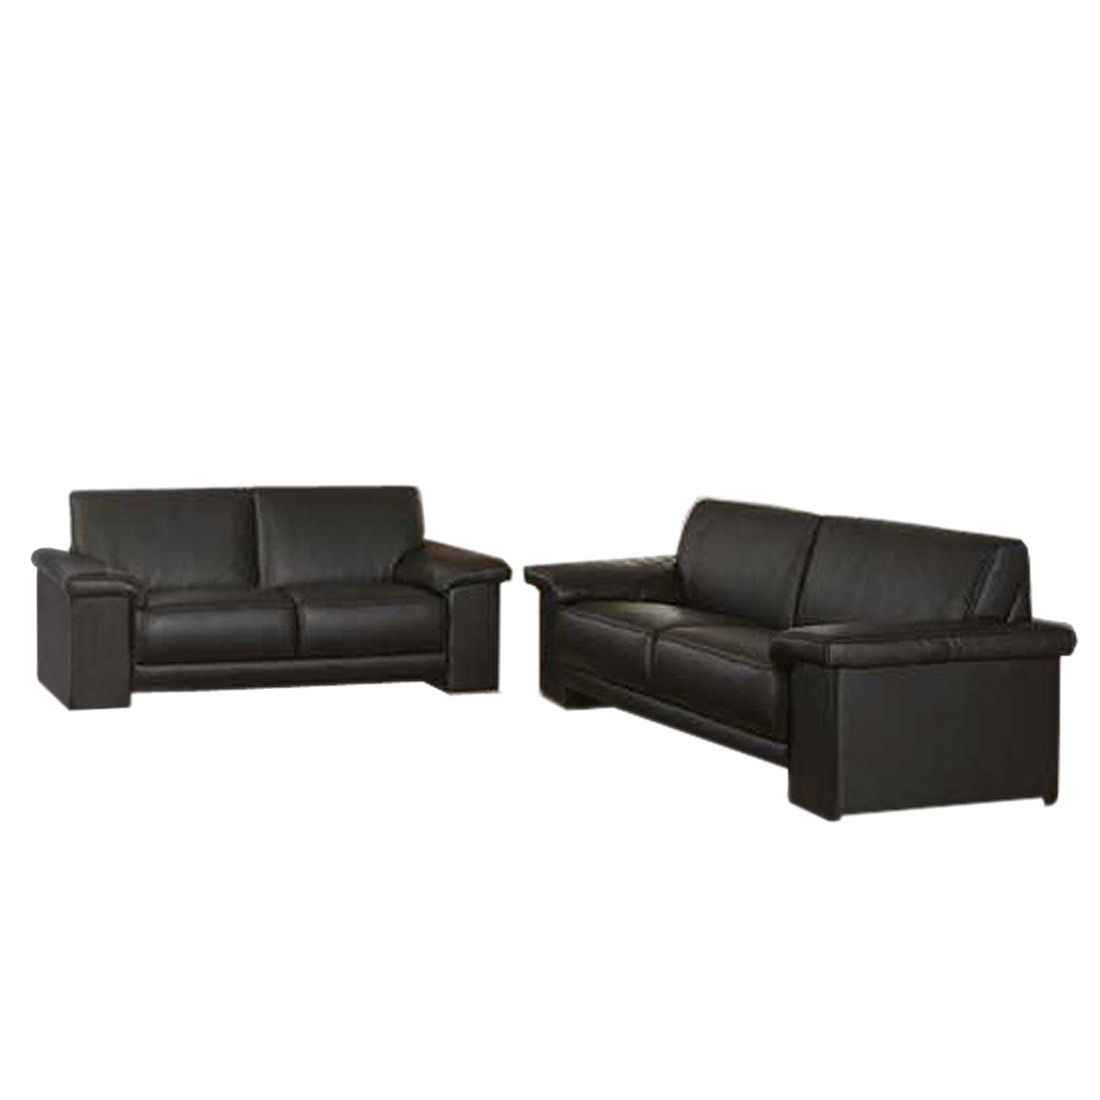 Sofa Goodyear Set – Dunkelbraun, Home Design günstig